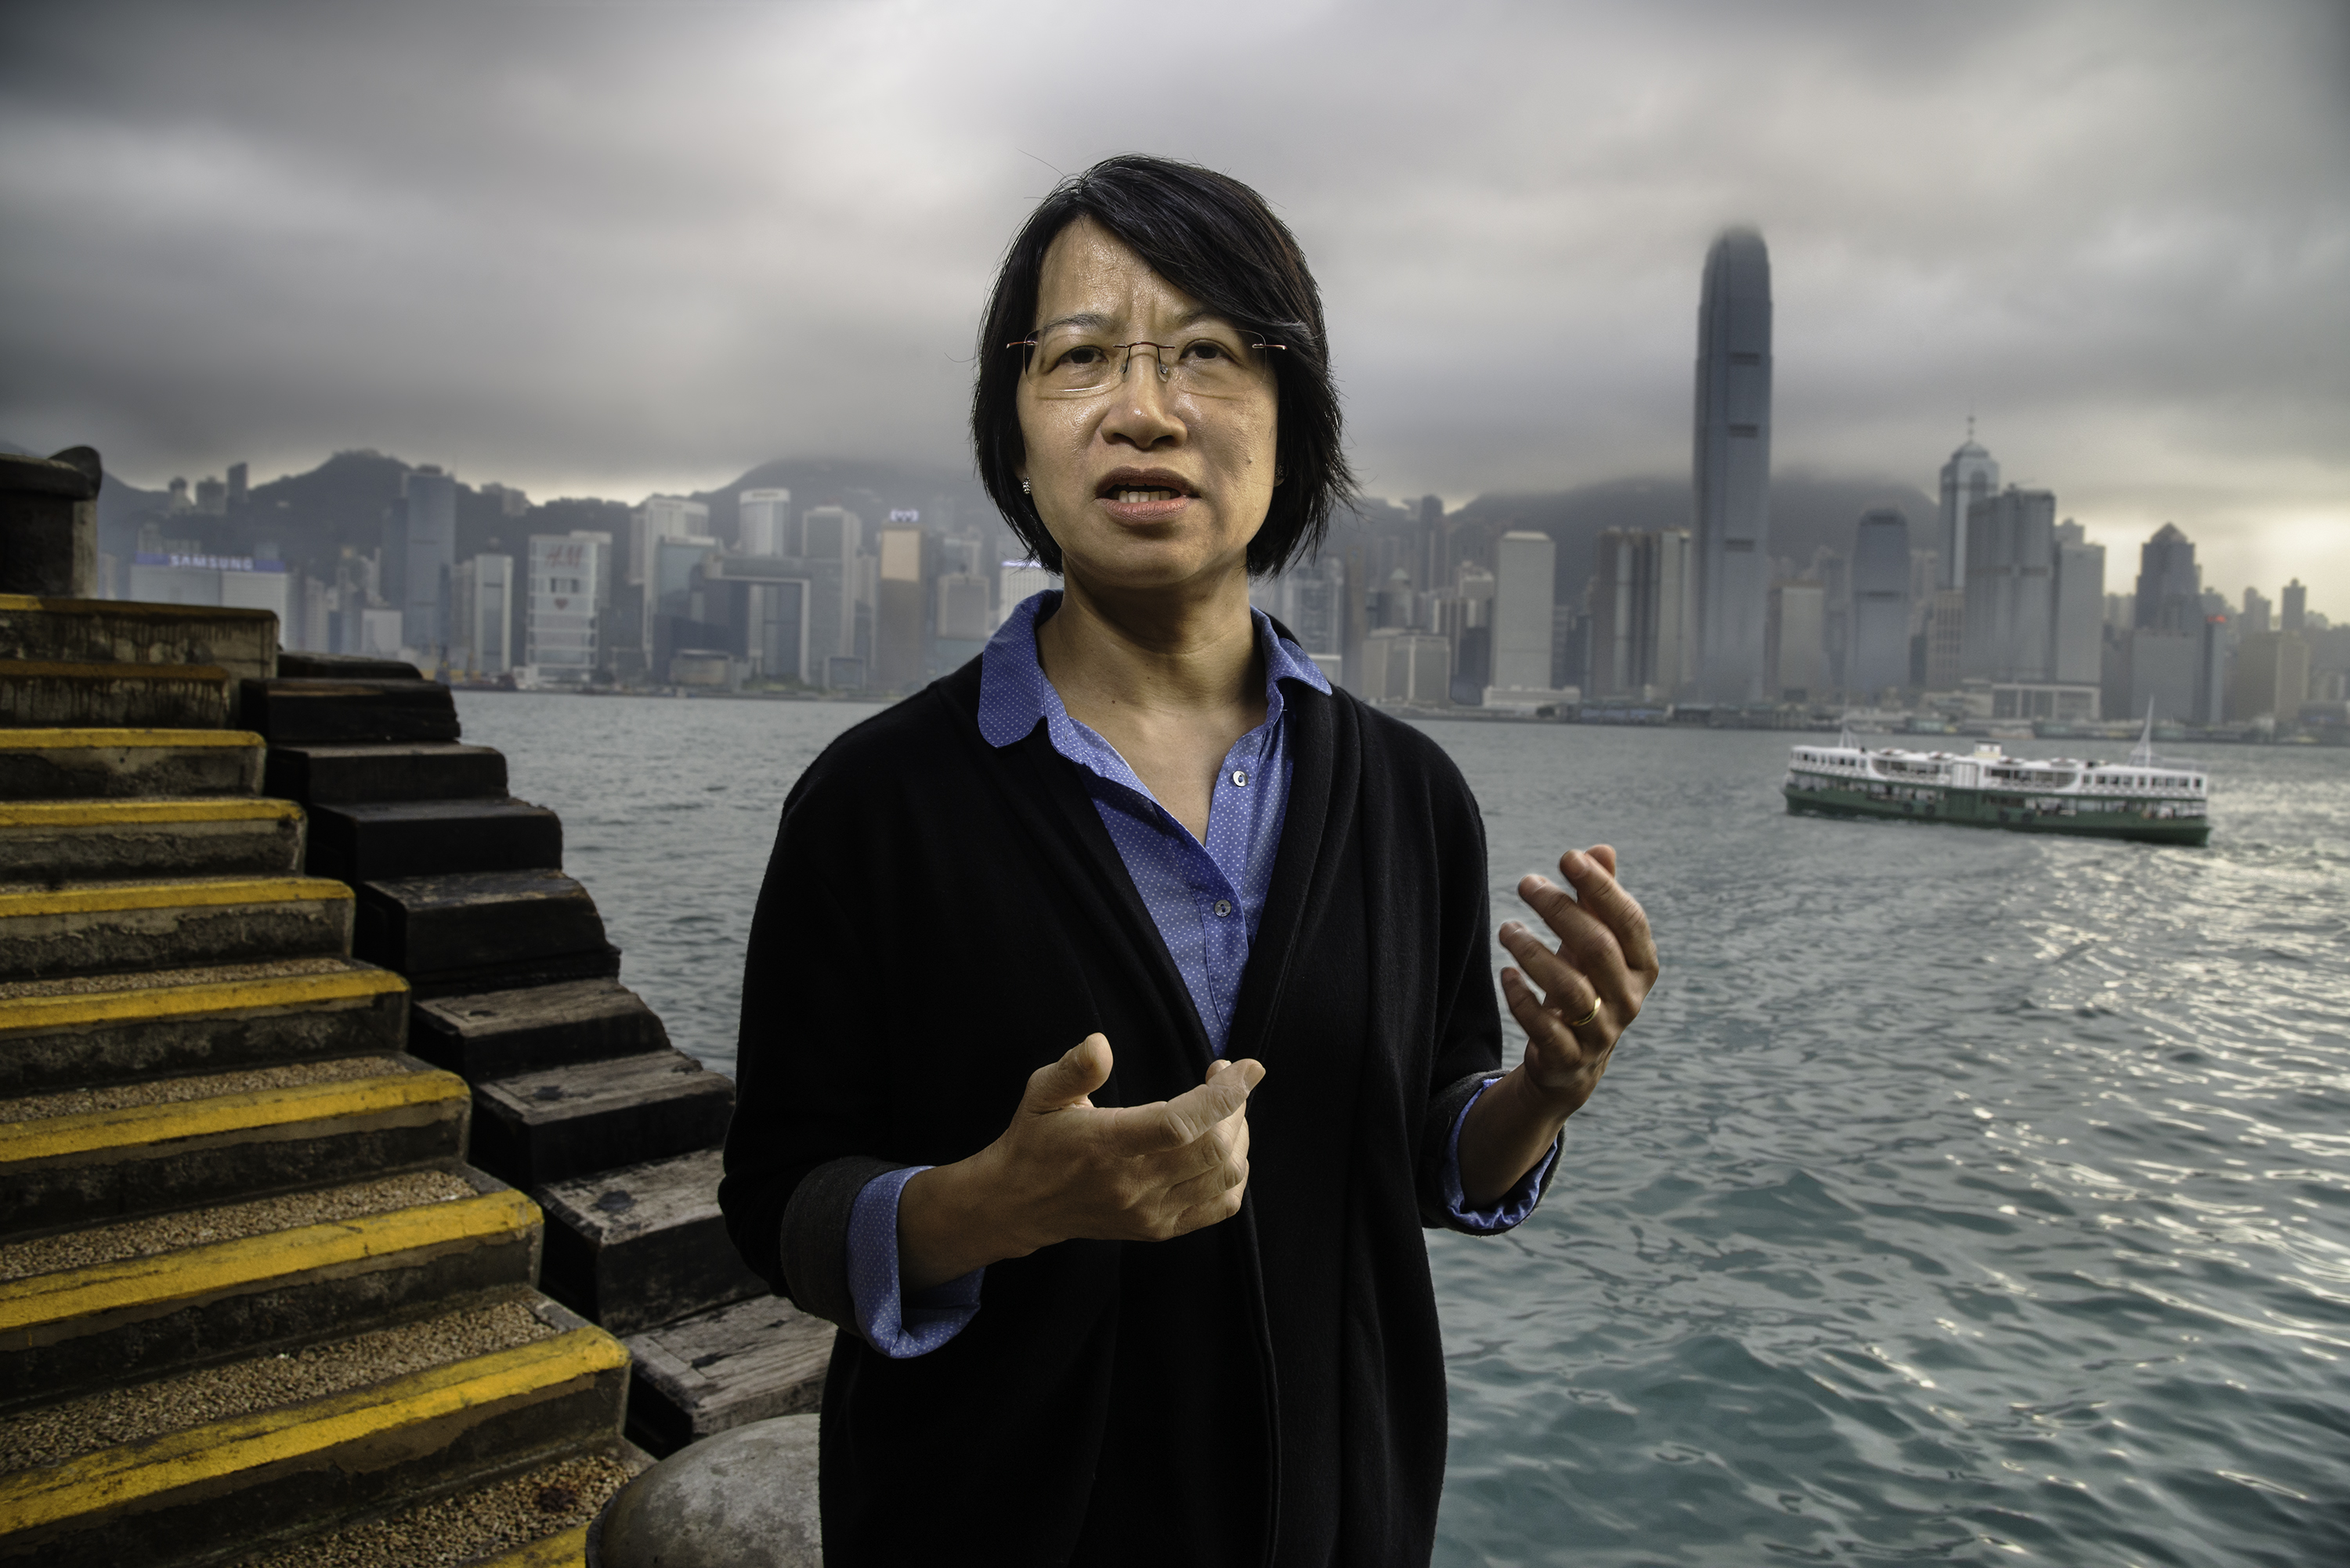 Elizabeth Tang, 58, domestic workers' rights activist in Hong Kong